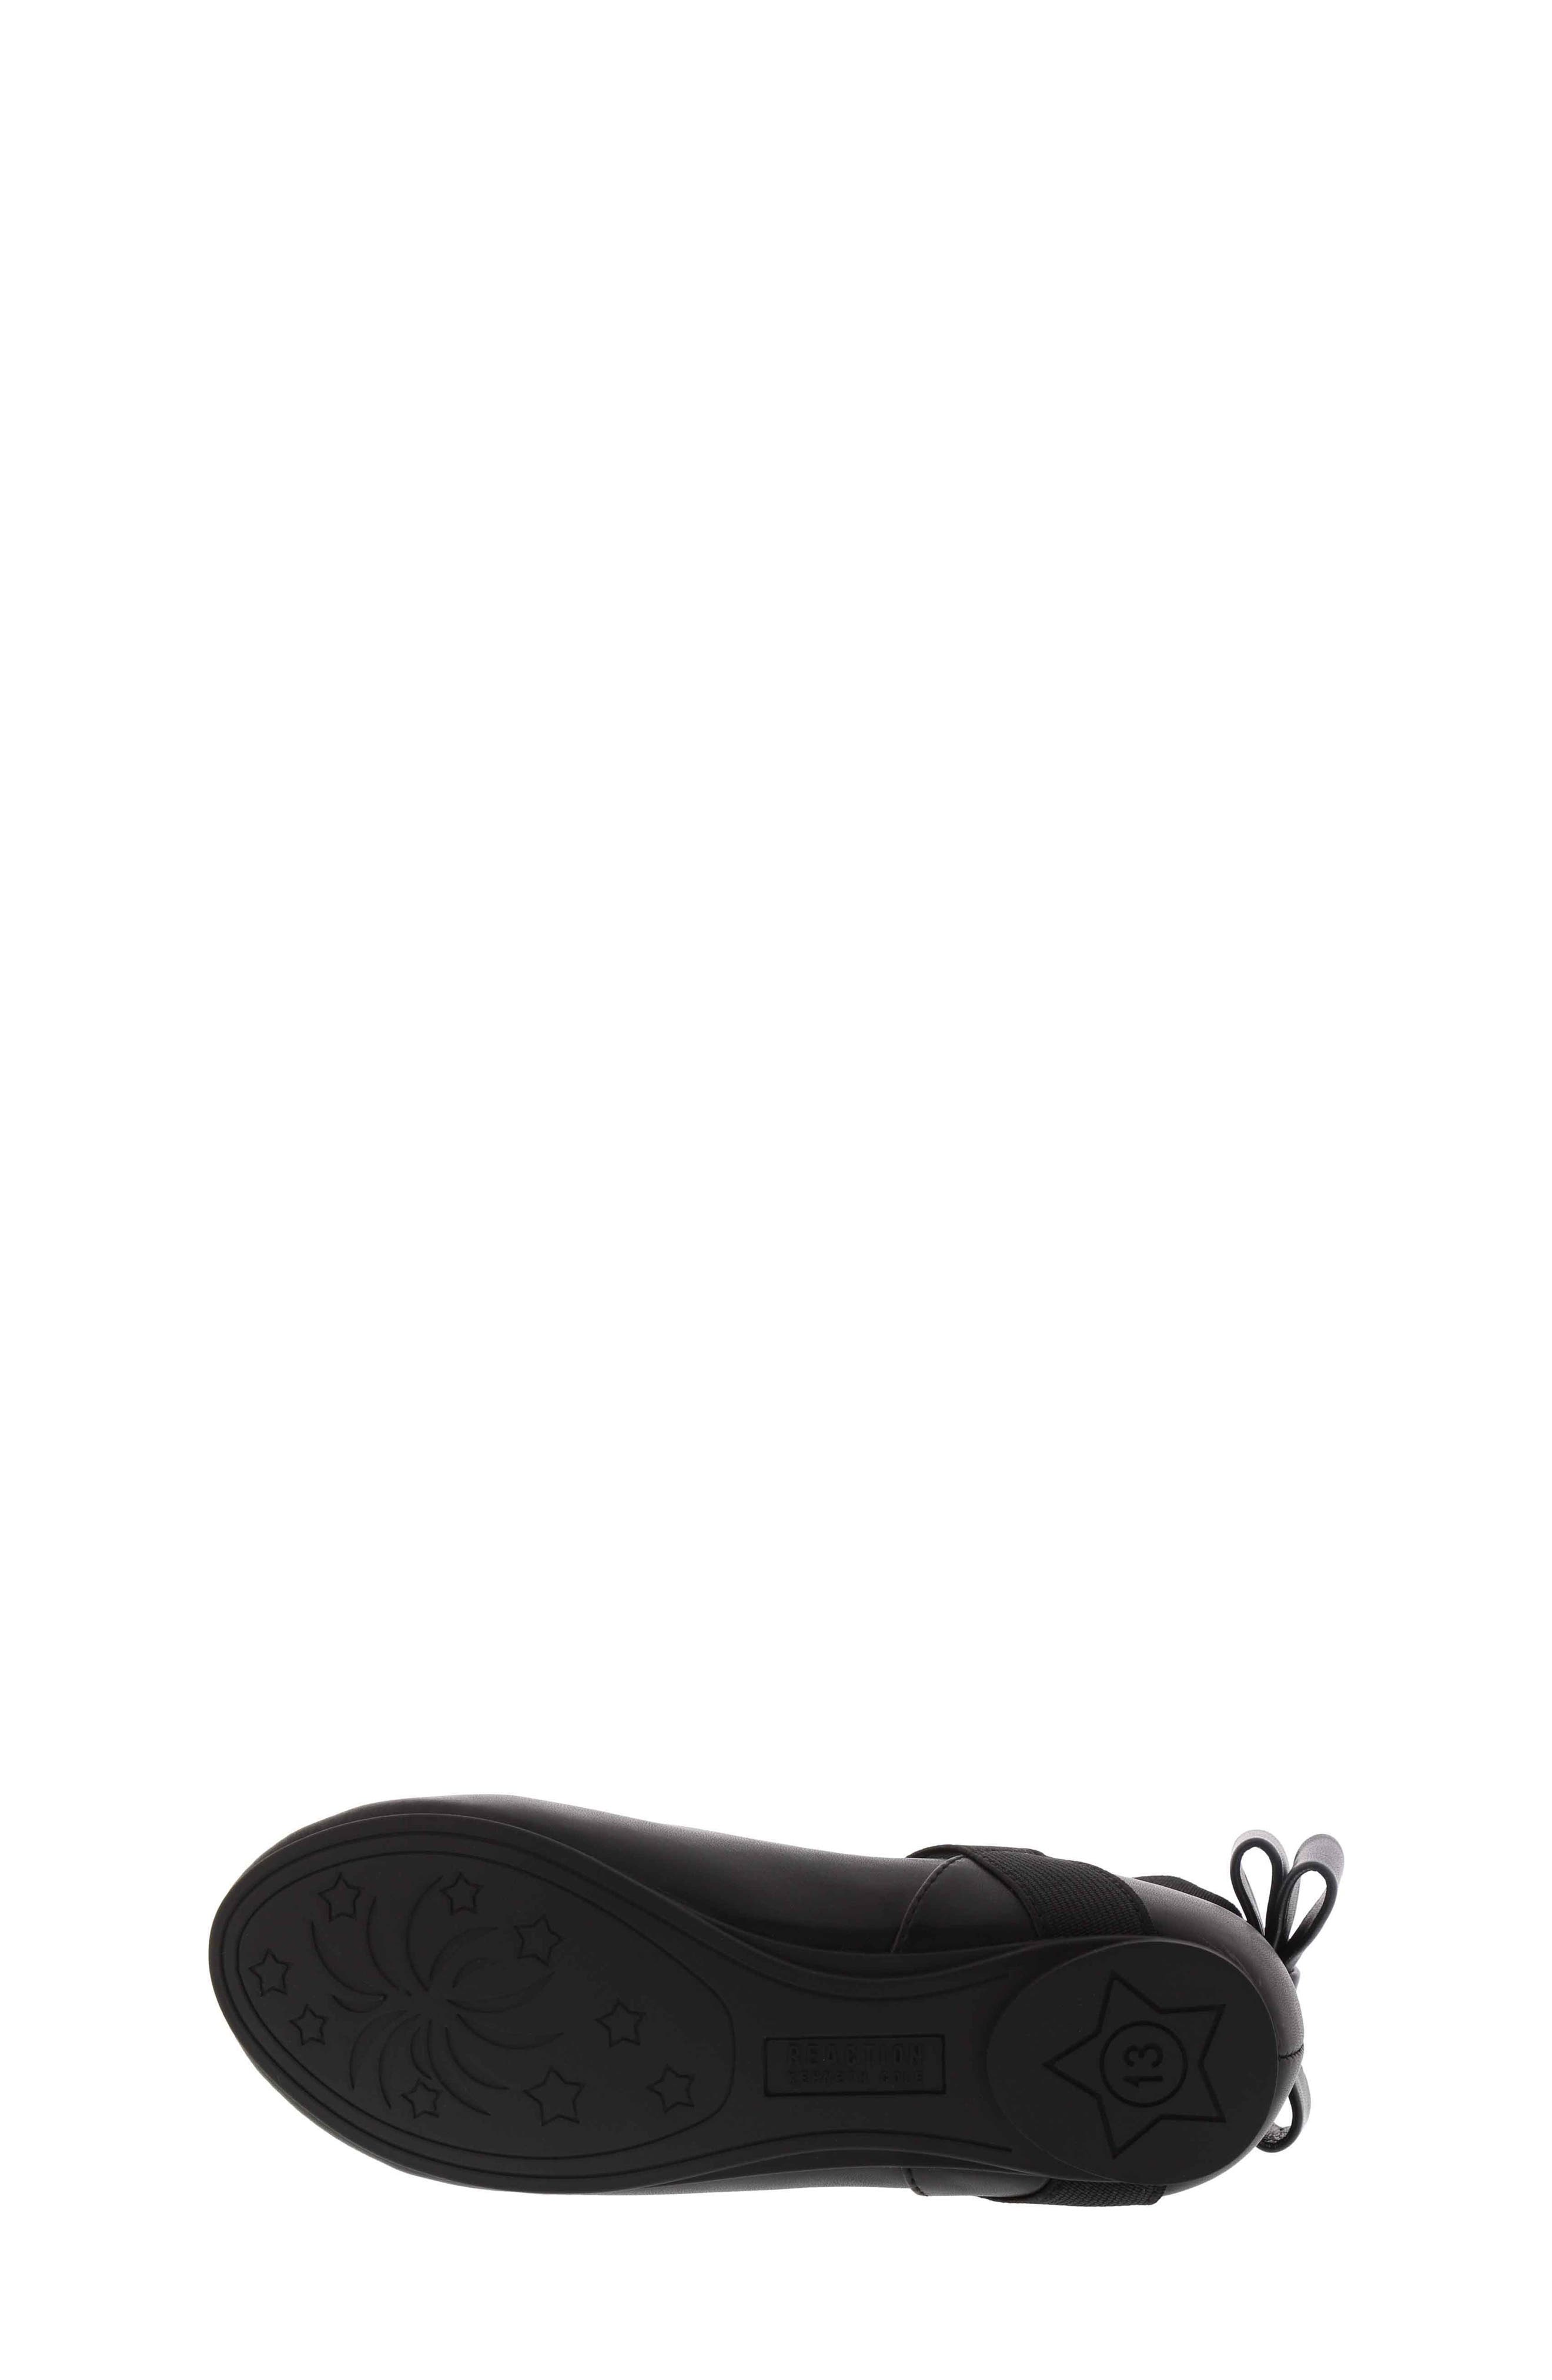 KENNETH COLE NEW YORK, Strappy Ballet Flat, Alternate thumbnail 6, color, 001